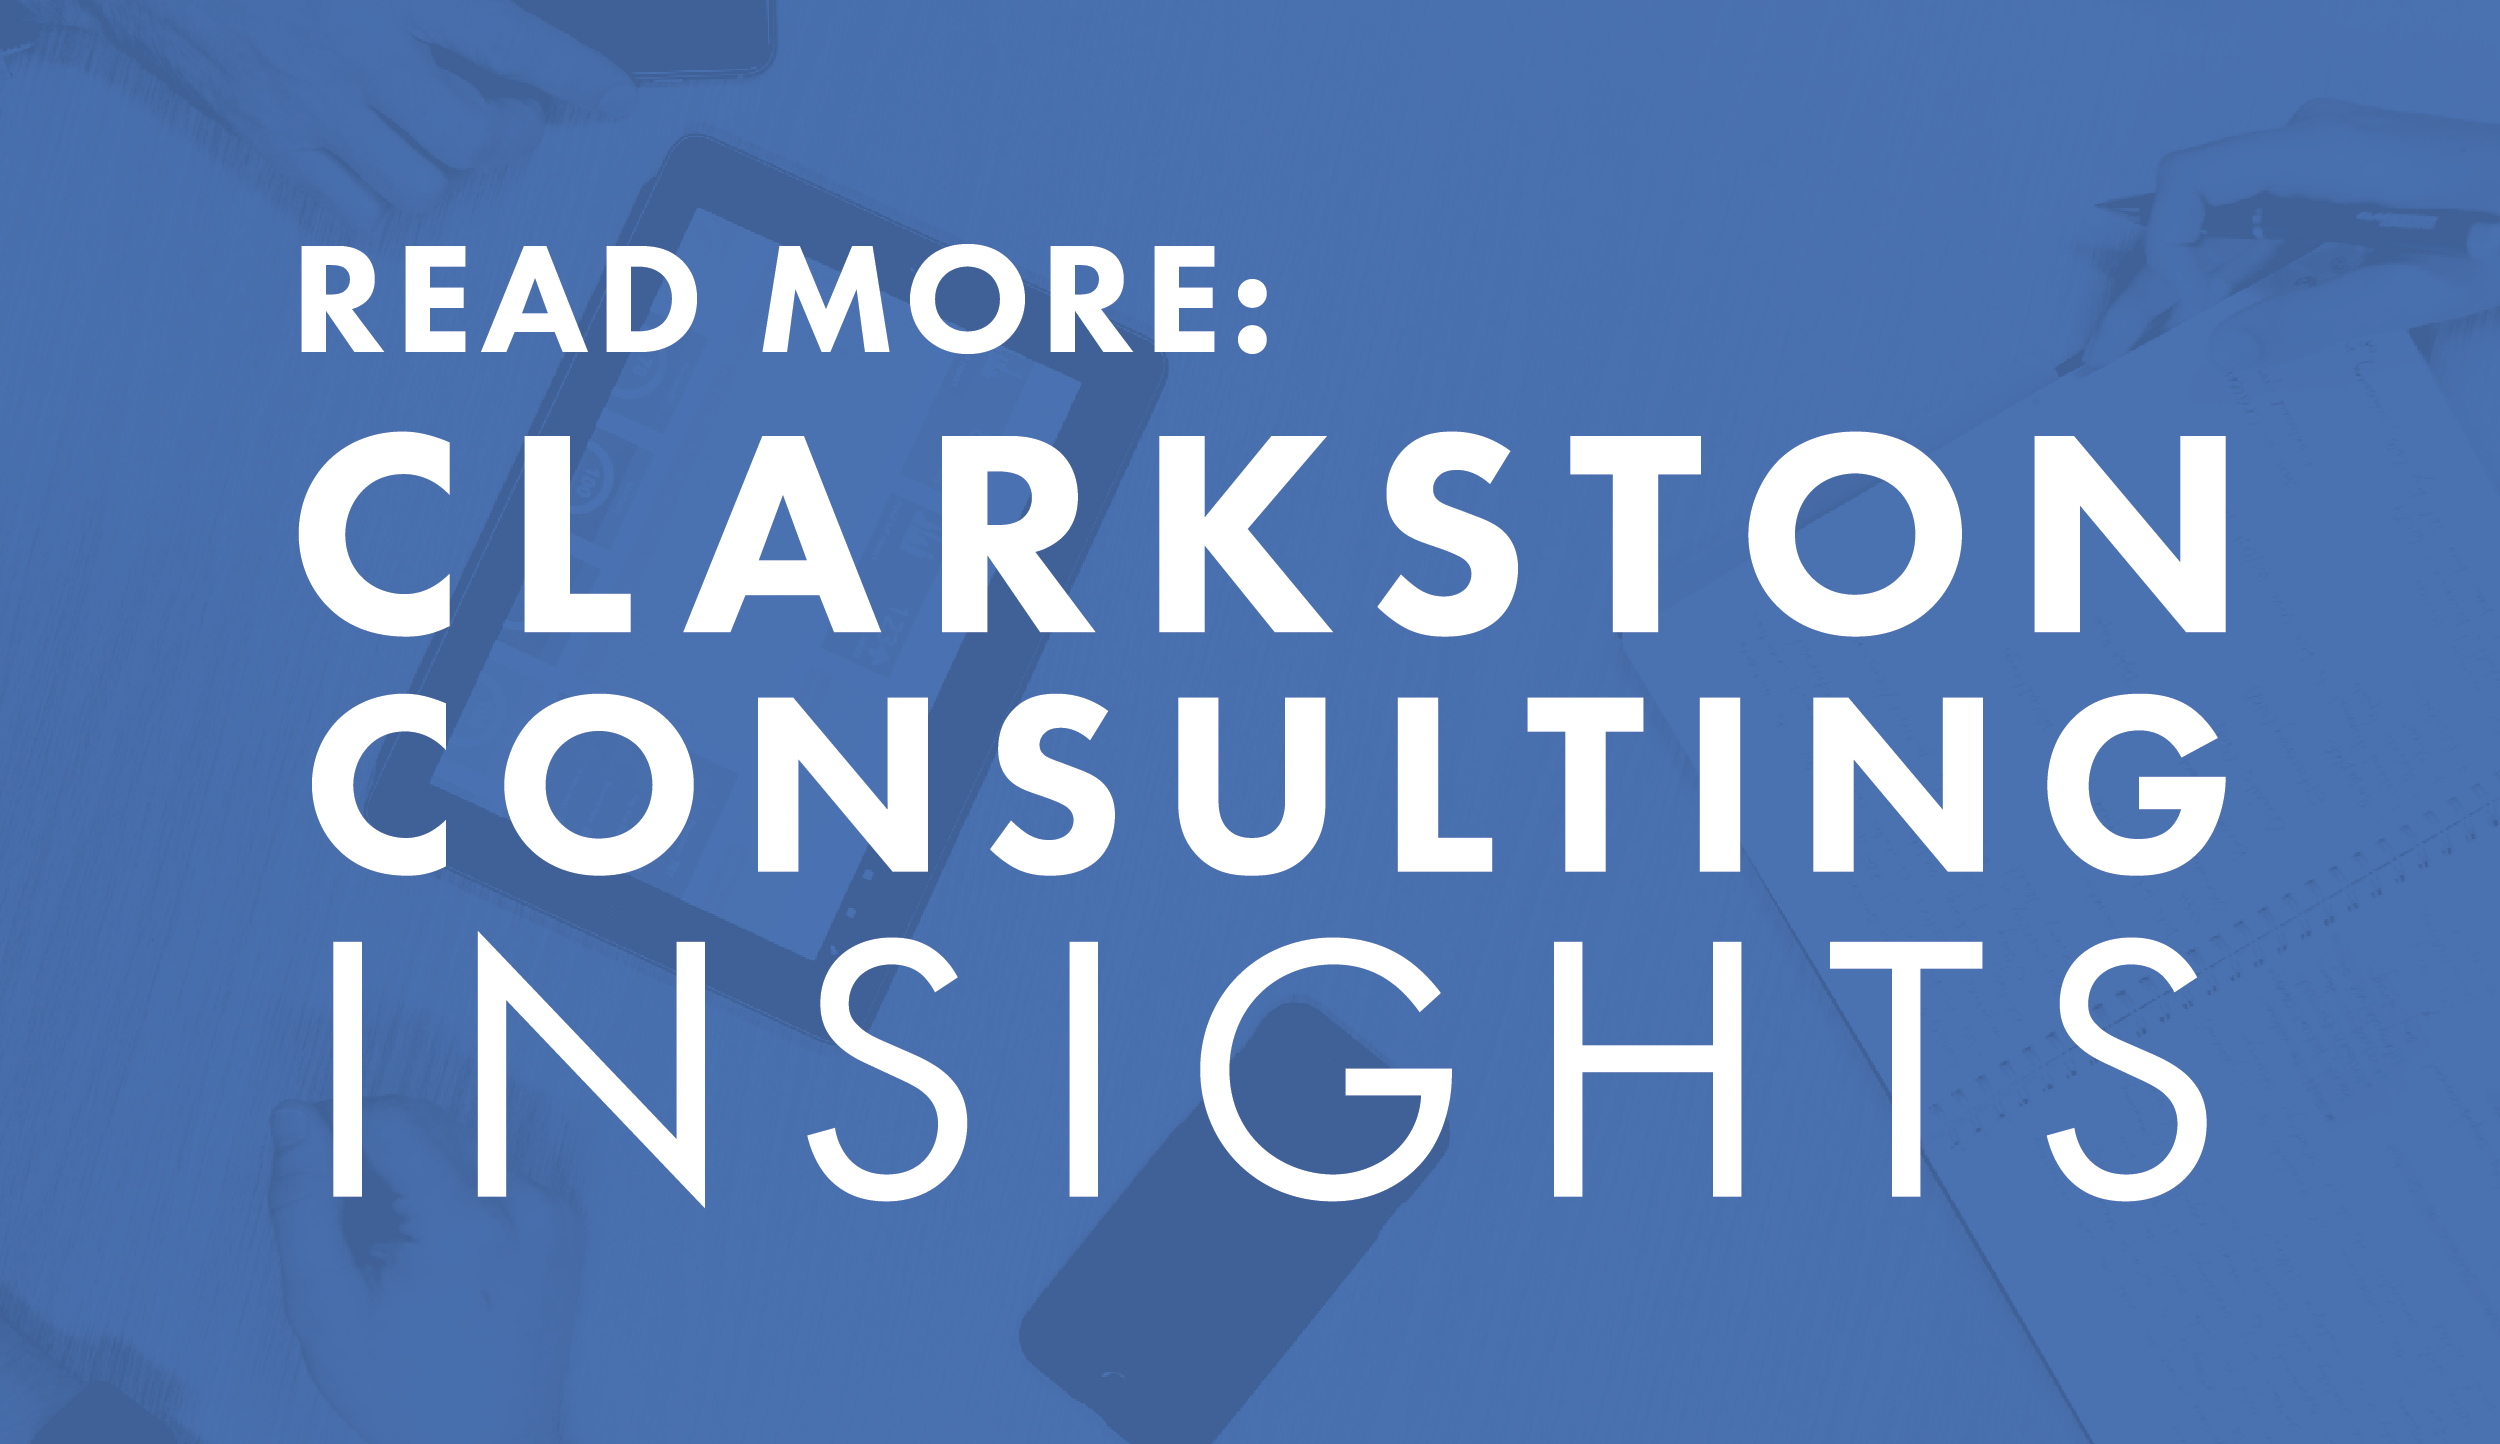 Read More: Clarkston Consulting Insights